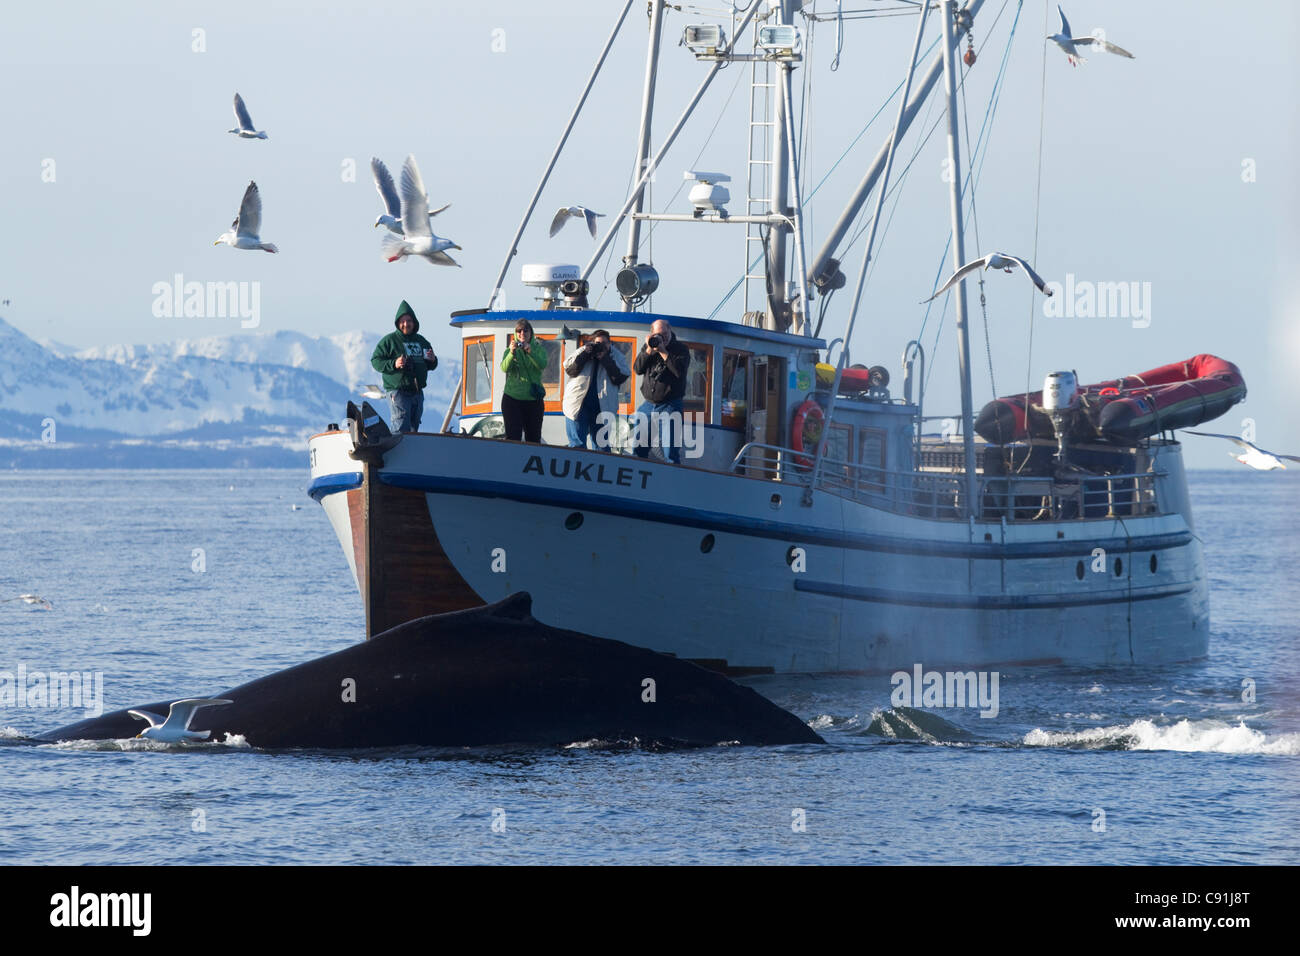 Humpback whales surfacing in front of vessel Auklet with people whale watching from bow, Prince William Sound, Alaska - Stock Image